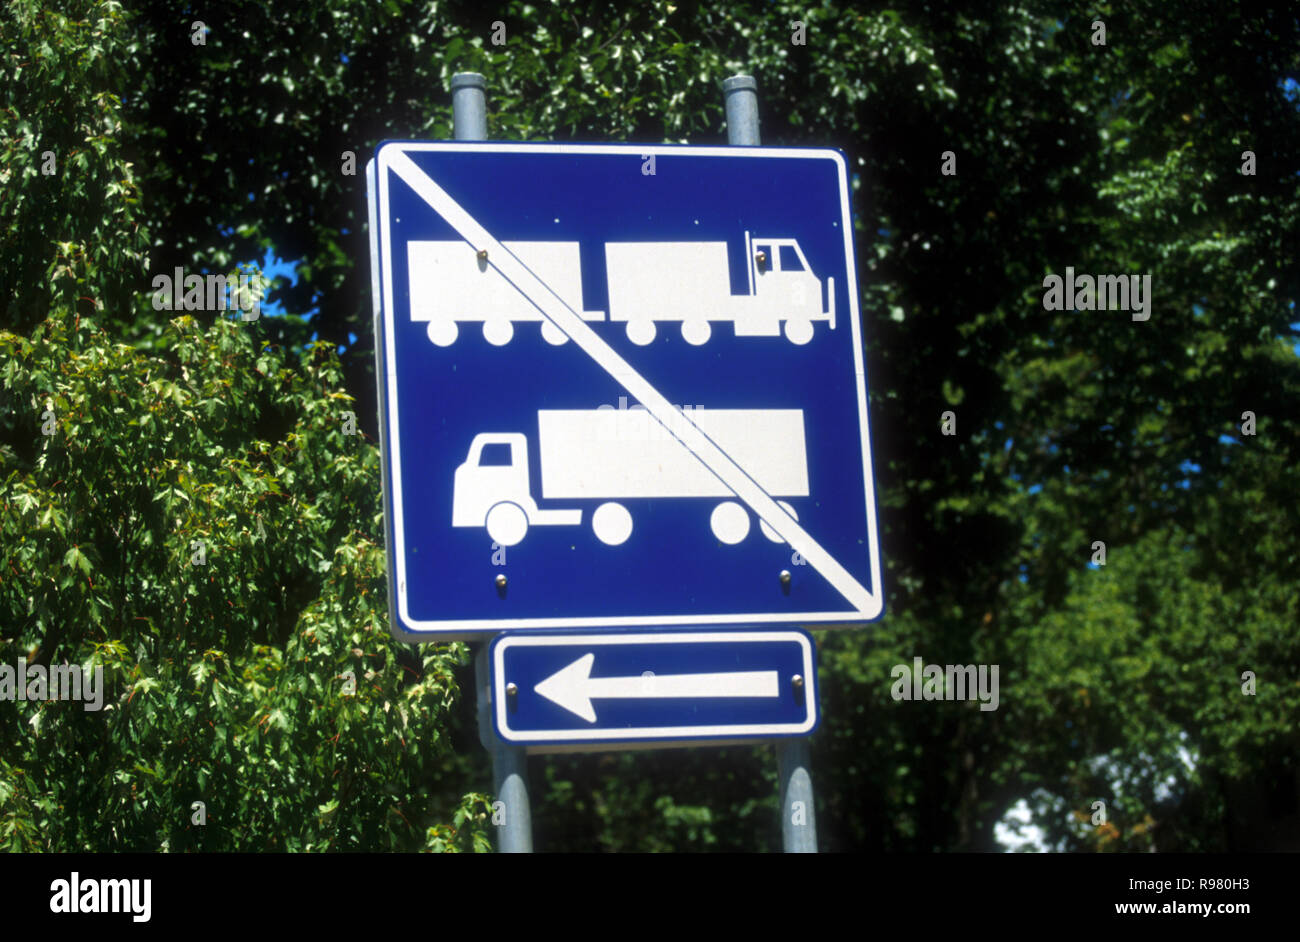 SYDNEY ROAD SIGN - TRUCKS NOT PERMITTED ON THIS STRETCH OF ROAD, NSW, AUSTRALIA - Stock Image